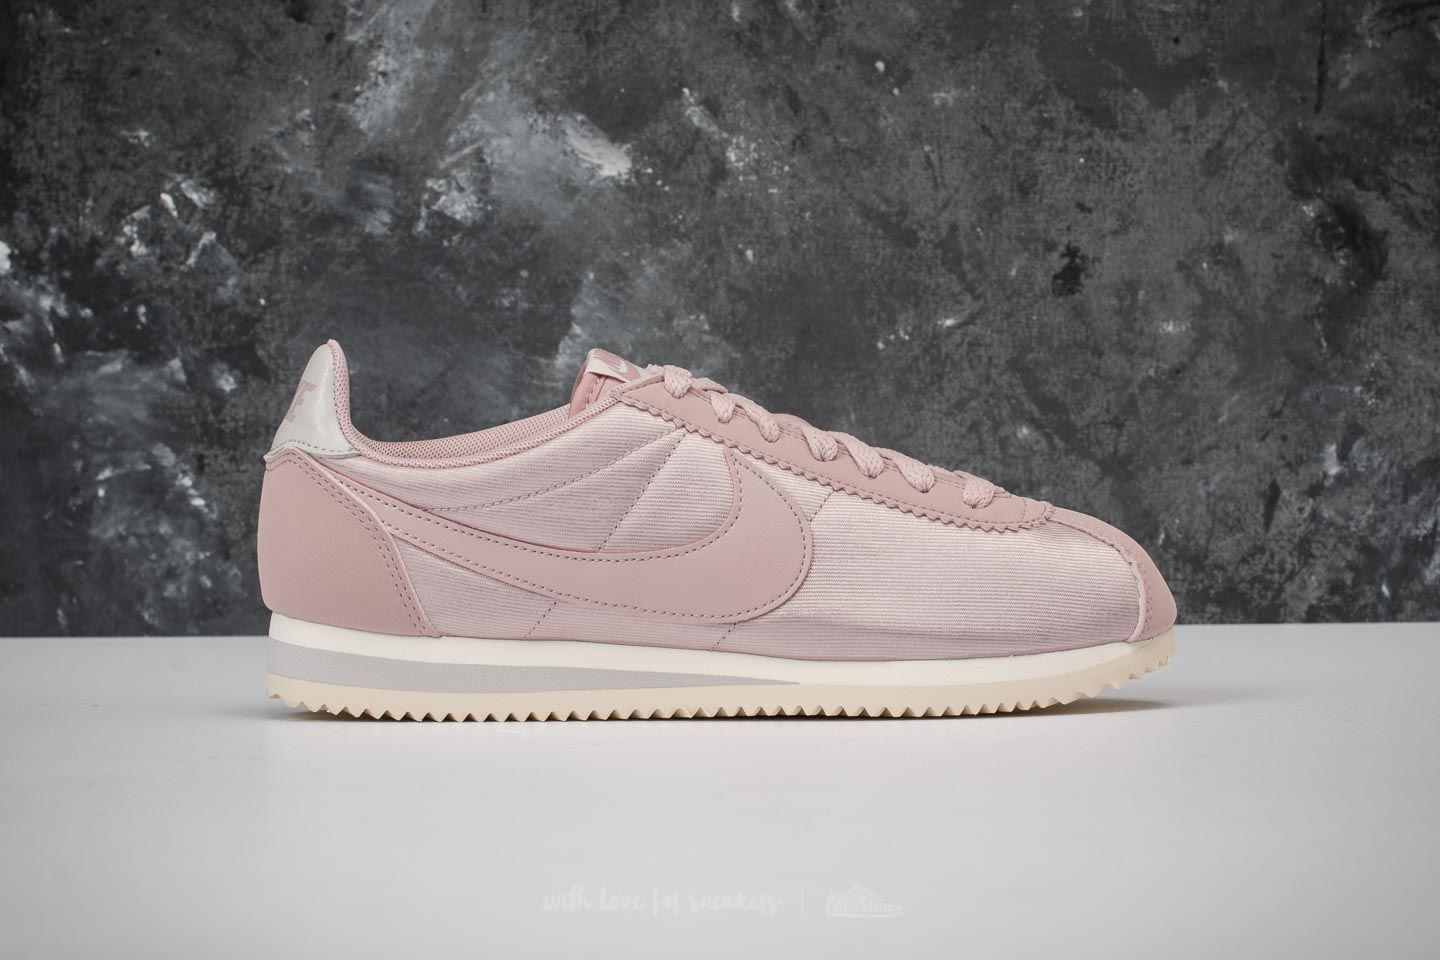 low priced 8e8f2 88ed6 Lyst - Nike Wmns Classic Cortez Nylon Particle Rose Particle